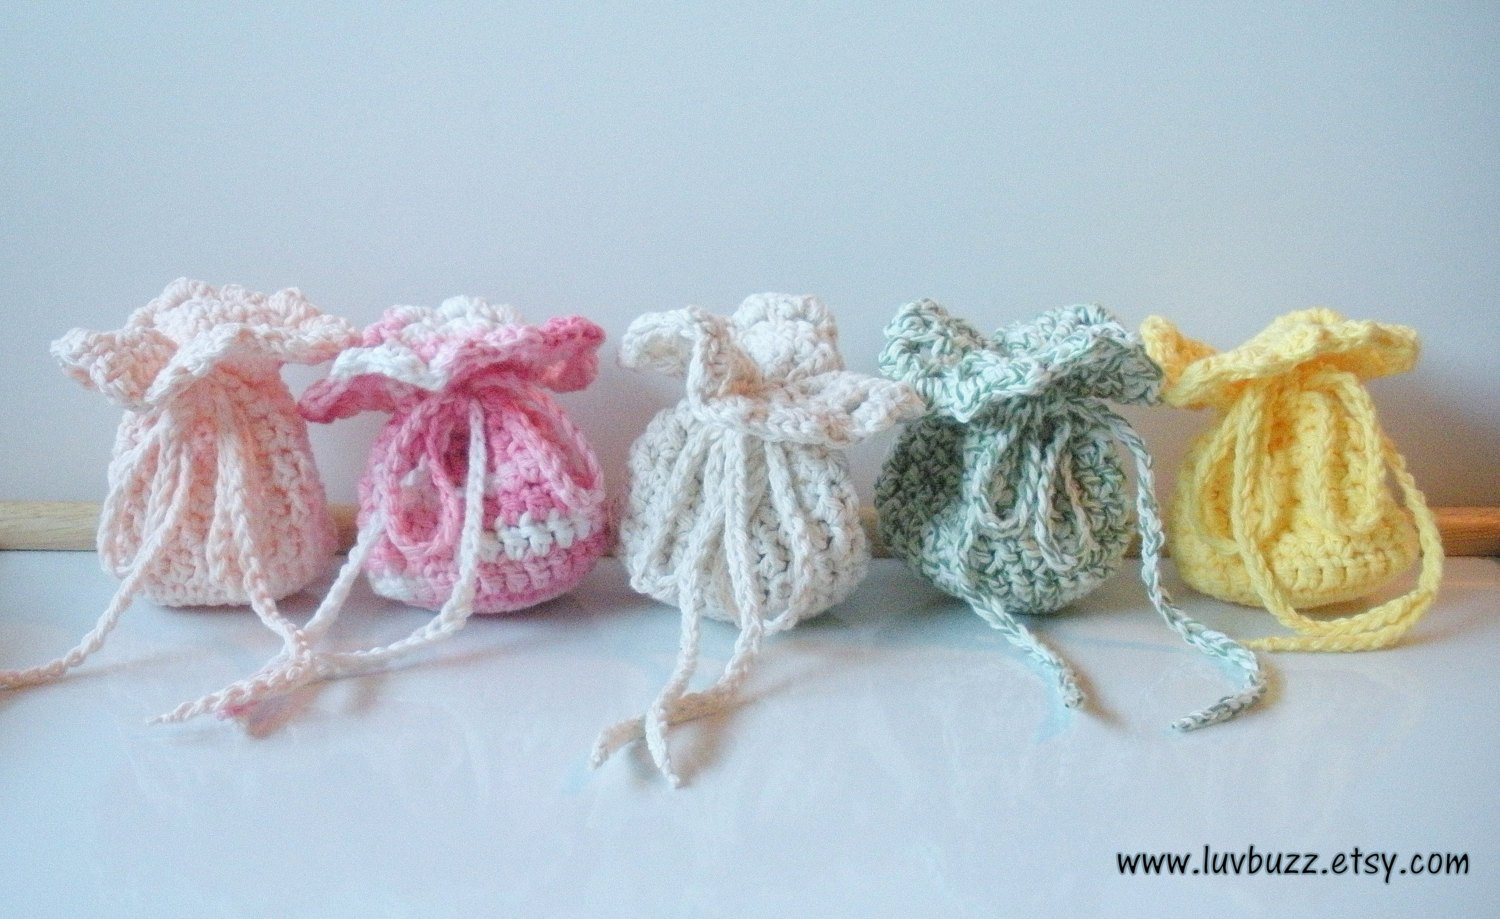 Crochet Wedding Gift Awesome Wedding Favor Bags Crochet Set Of 20 or More Party by Luvbuzz Of Incredible 46 Images Crochet Wedding Gift